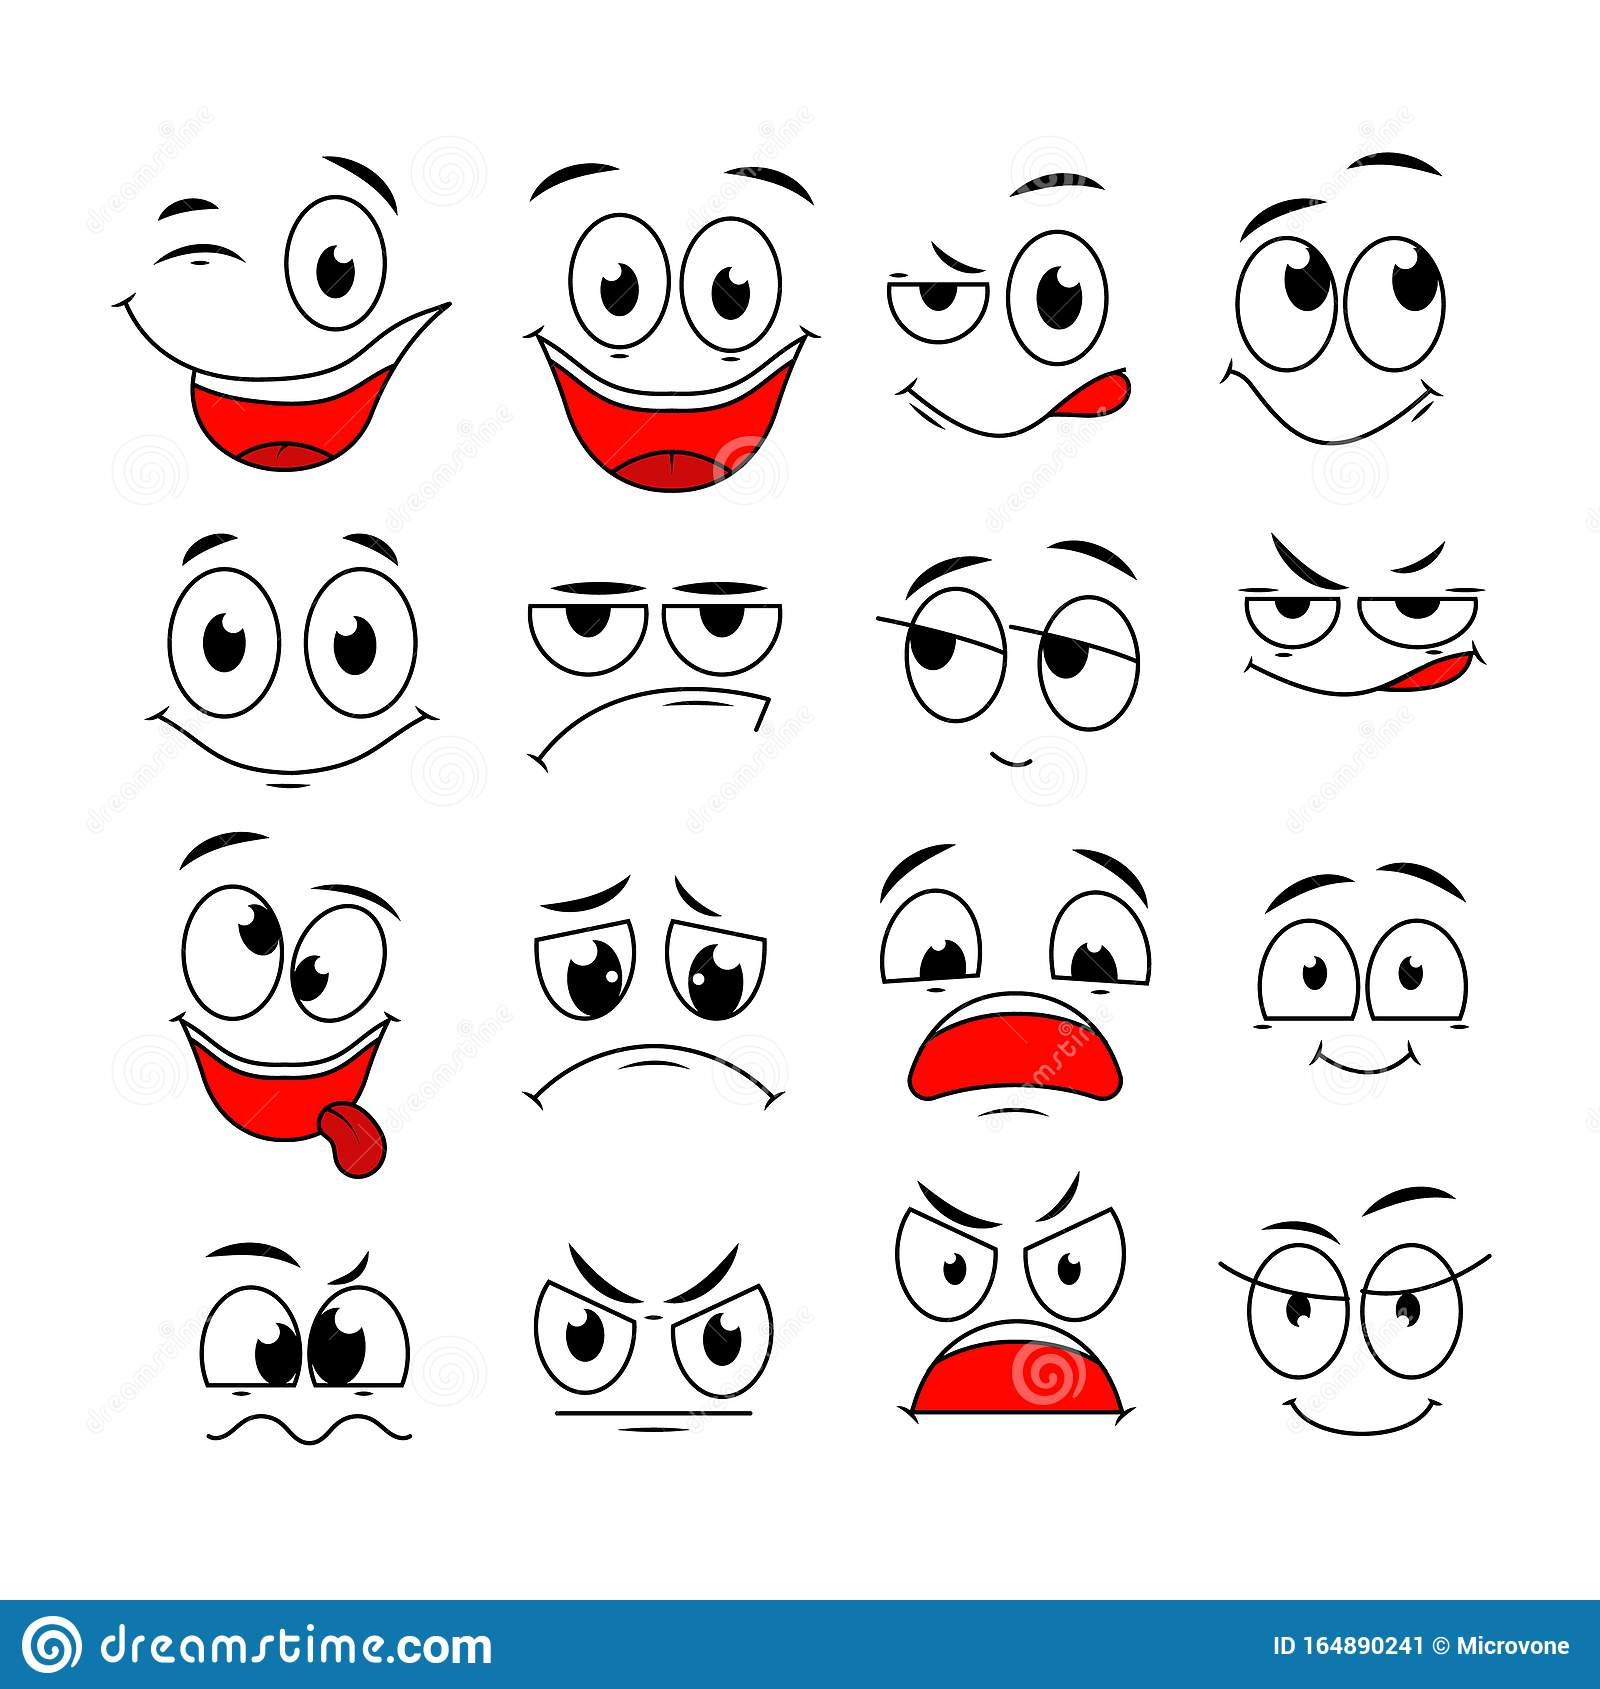 Cartoon Expressions Cute Face Elements Eyes And Mouths With Happy